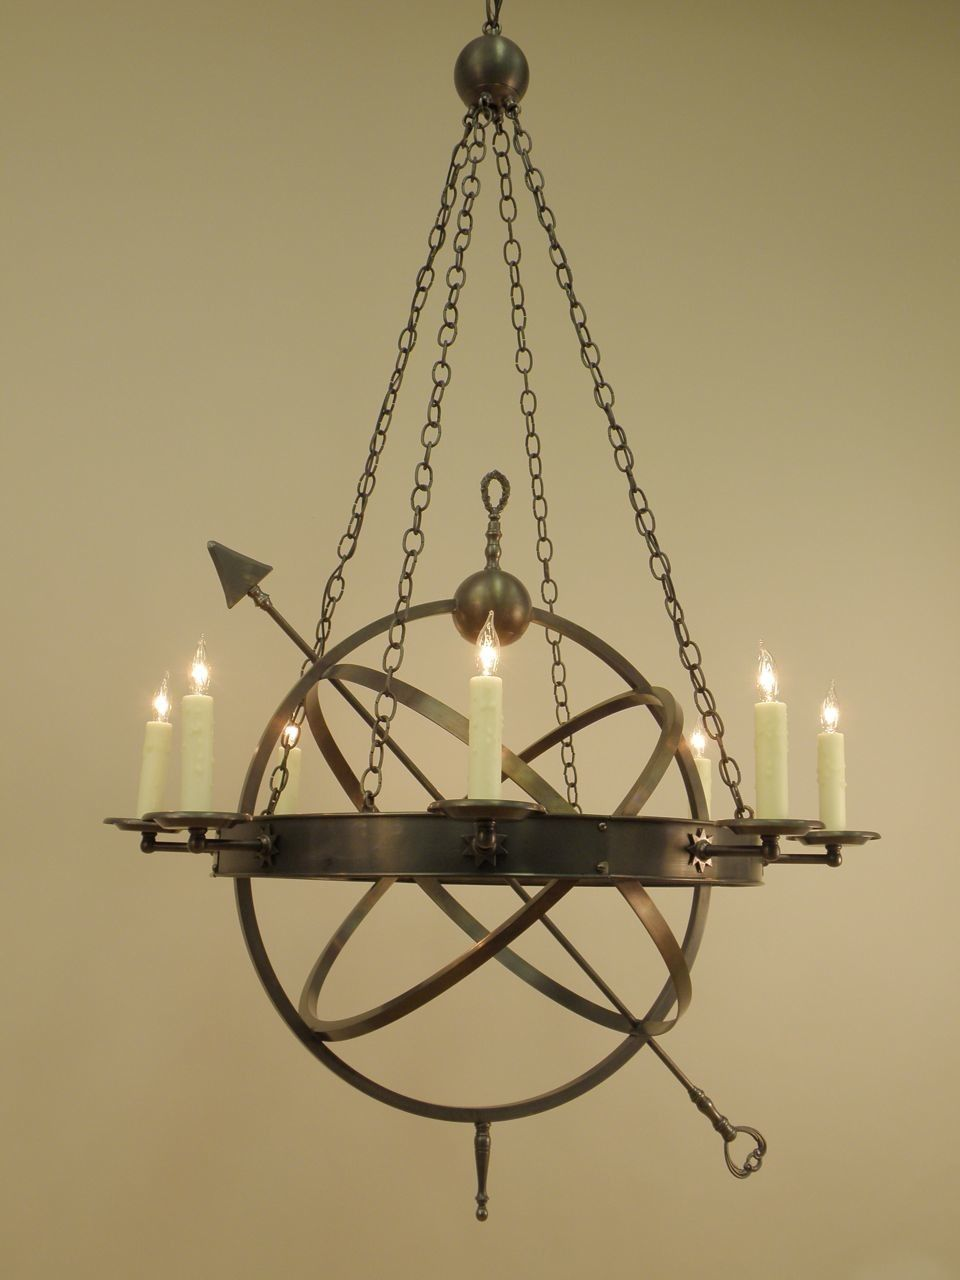 Beautiful vermont made colonial reprodution lighting from beautiful vermont made colonial reprodution lighting from authentic designs the custom made armillary chandelier in arubaitofo Choice Image